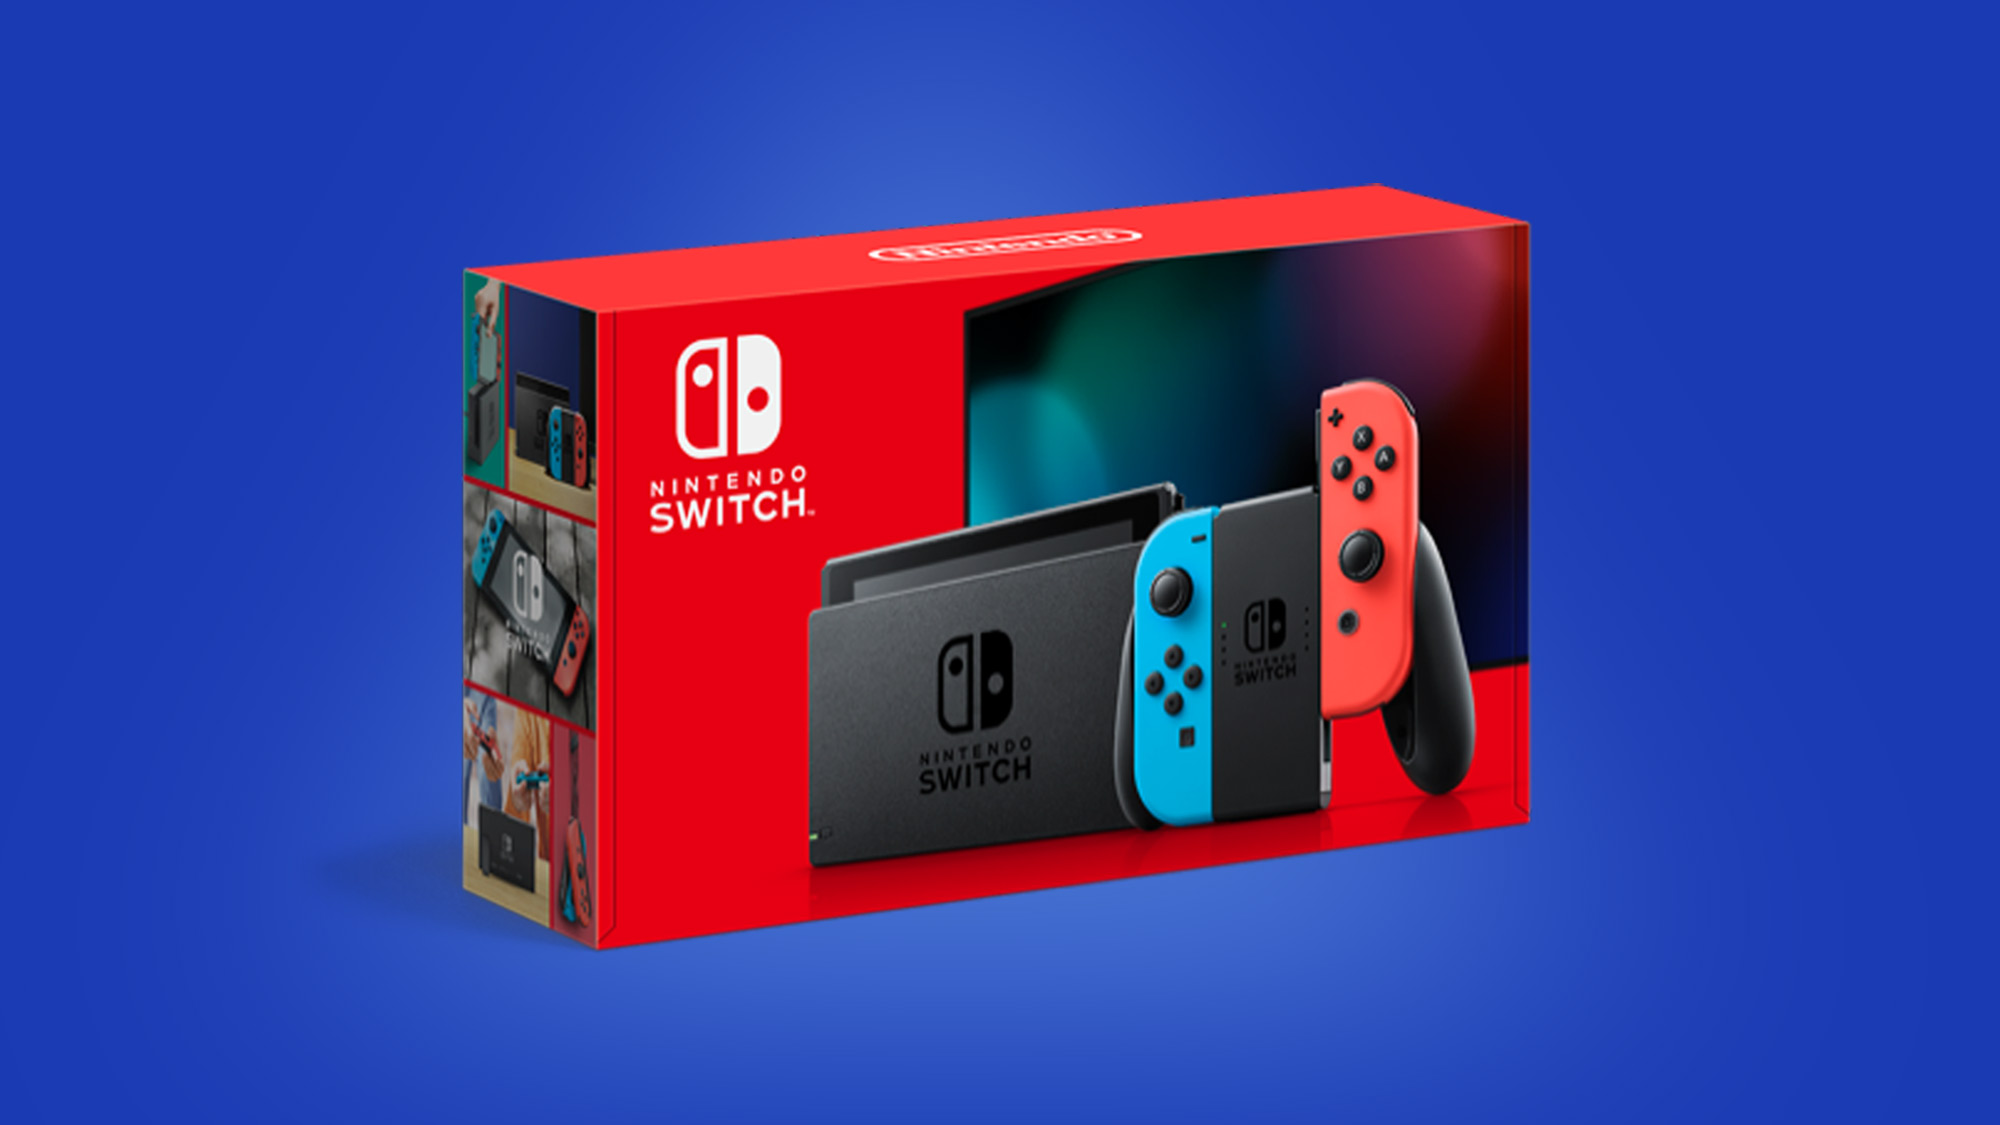 The cheapest Nintendo Switch bundle deals and prices in March 2020